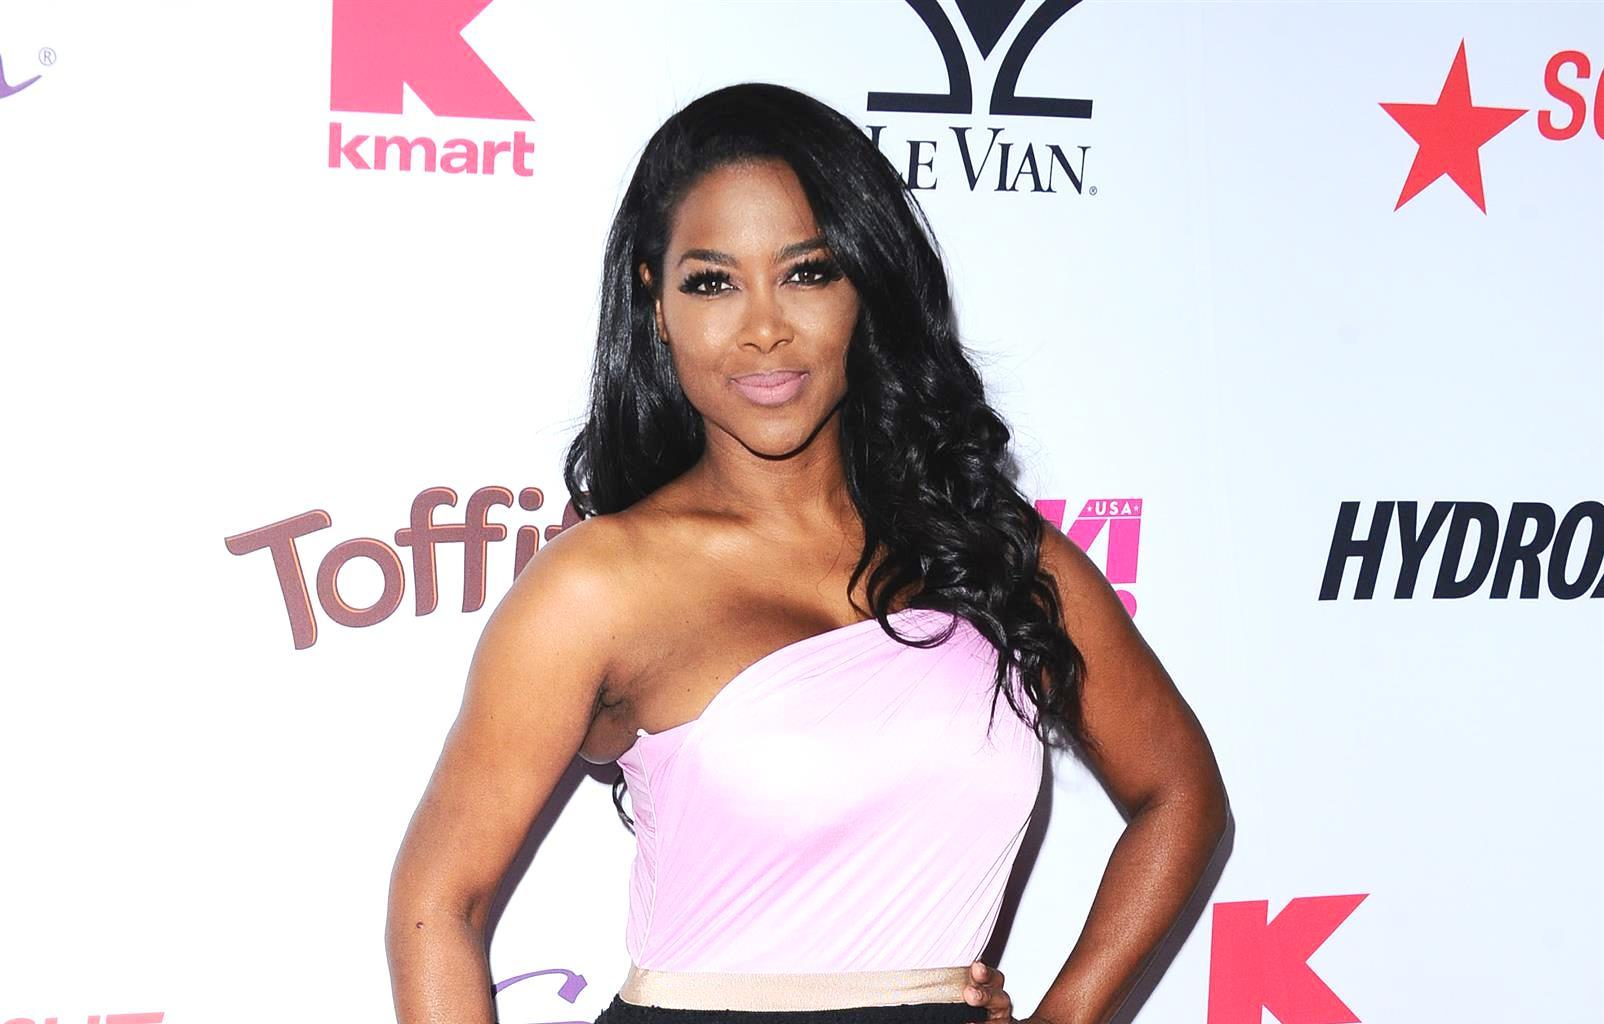 Kenya Moore's Pics Of Her Baby Girl, Brooklyn Daly Opening A Gift From Cynthia Bailey For Christmas Have Fans In Awe